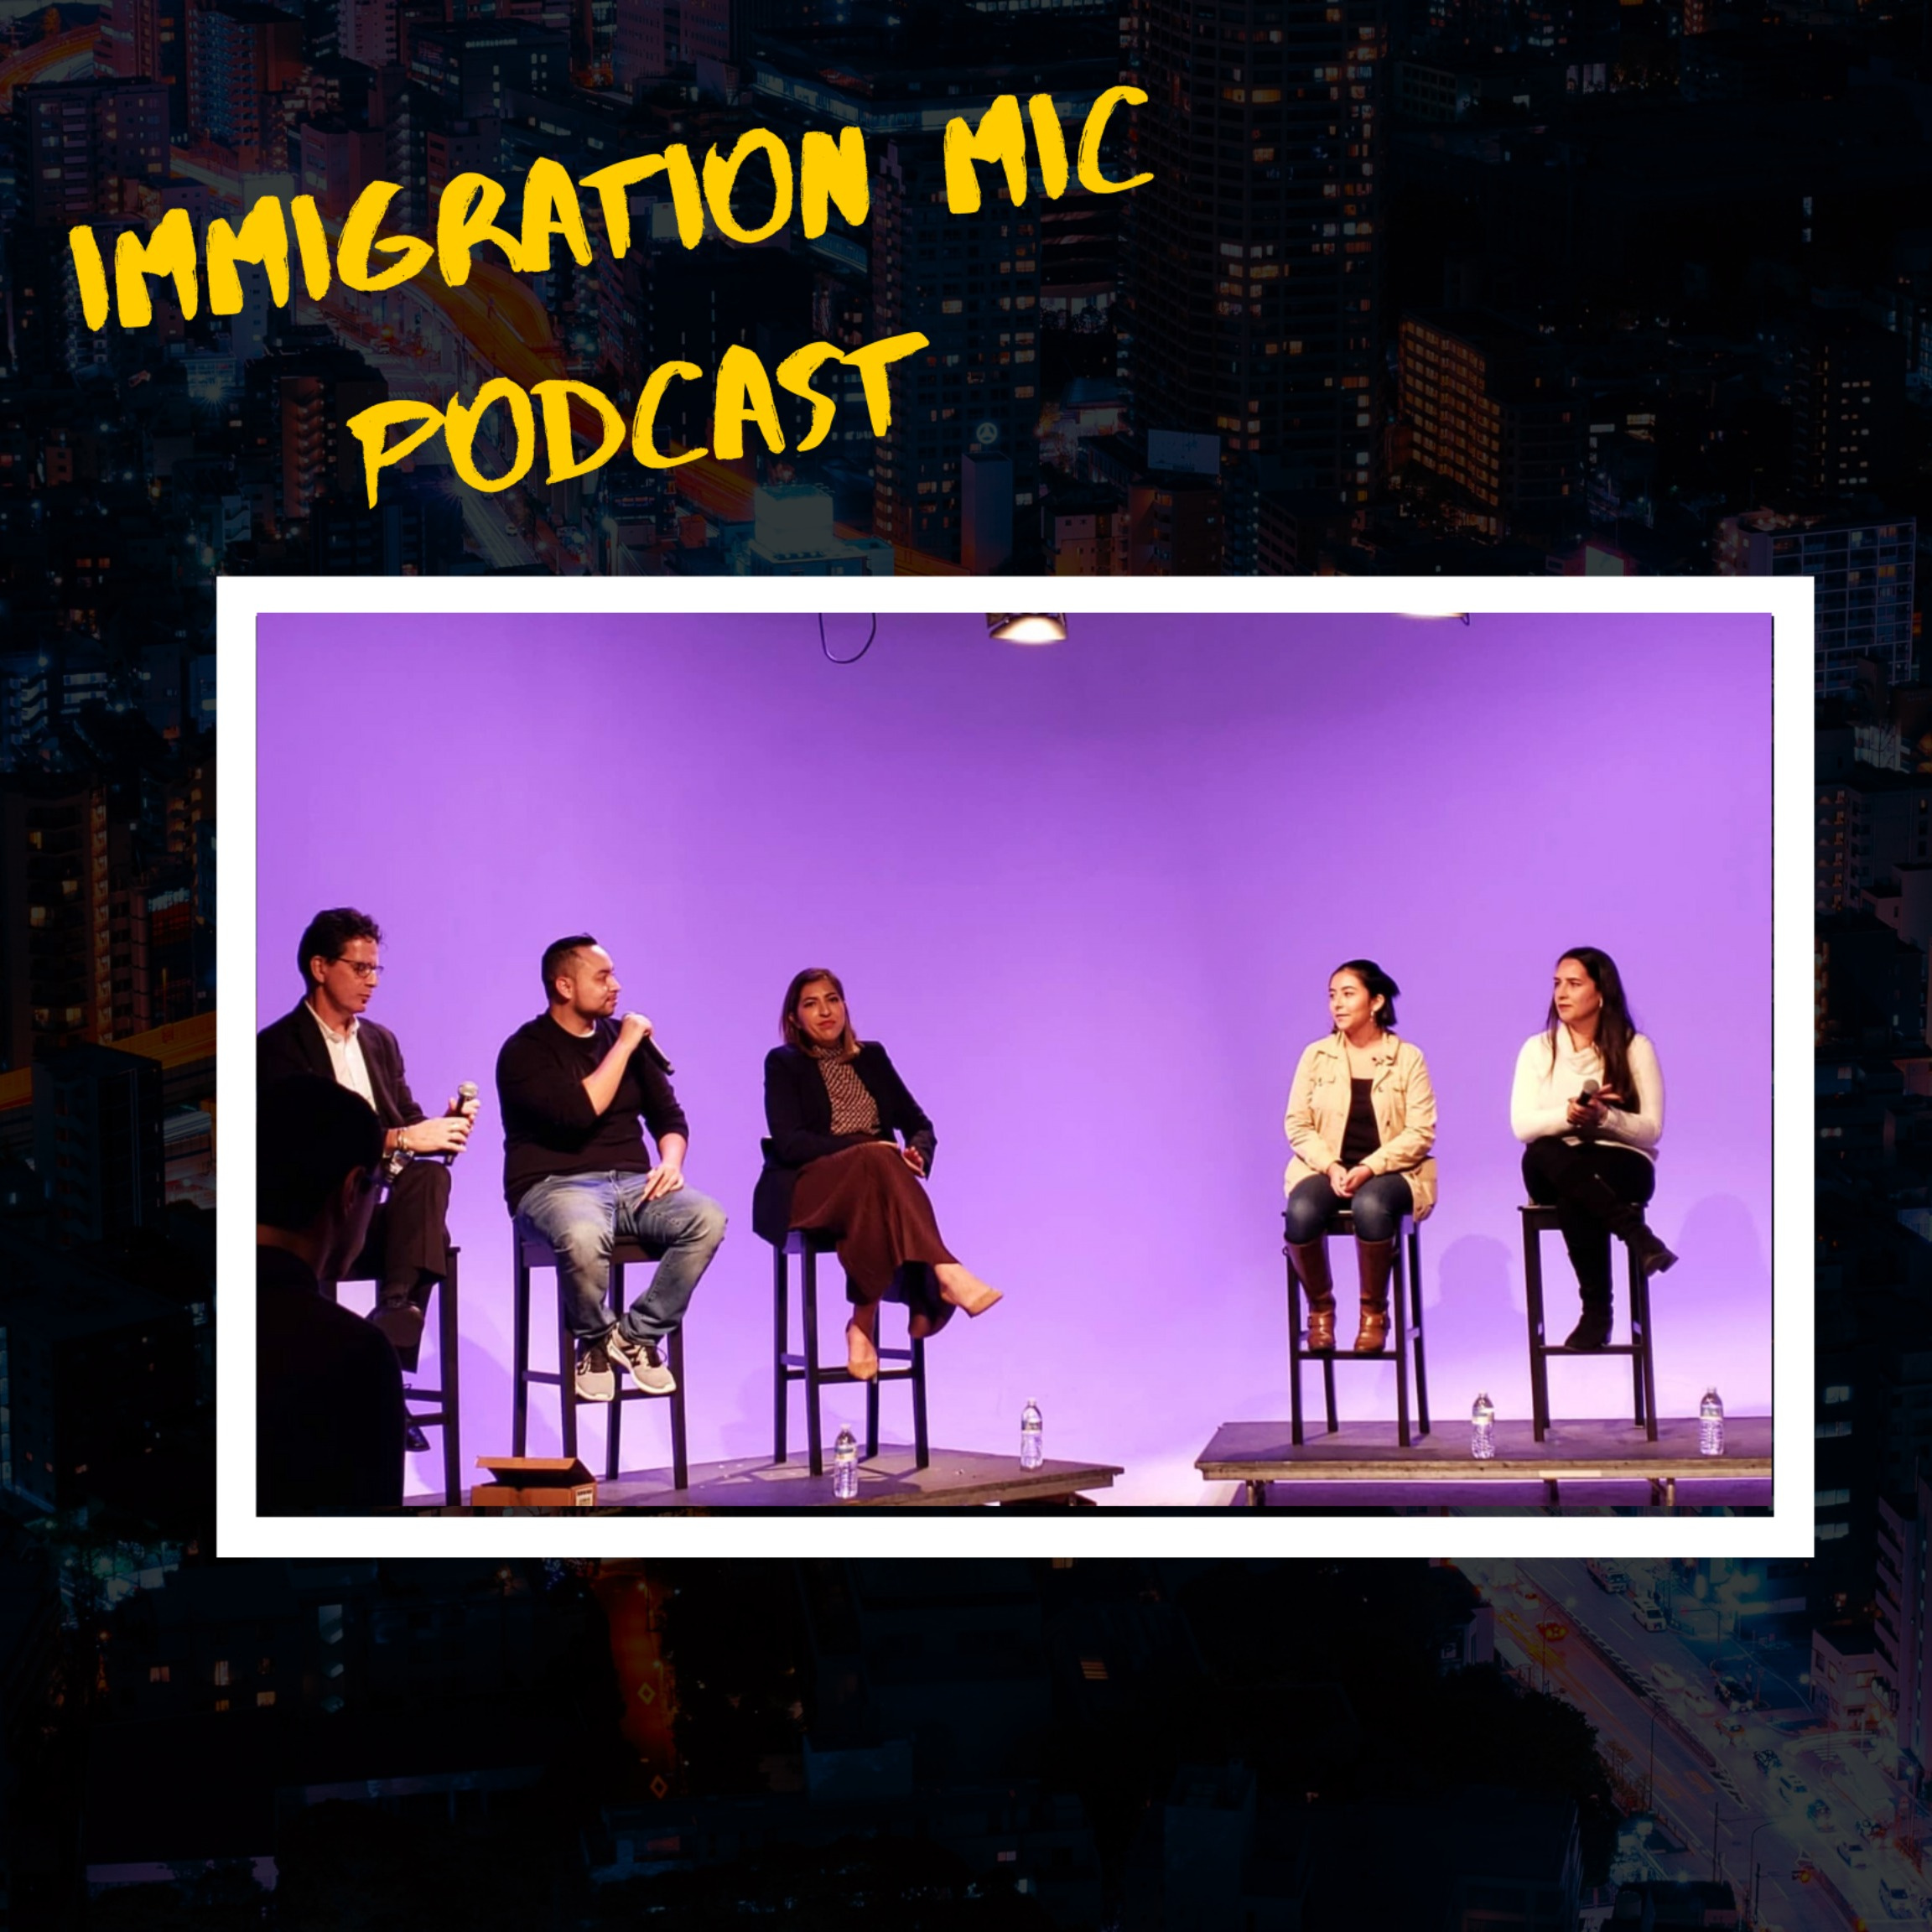 Immigration MIC Album Art